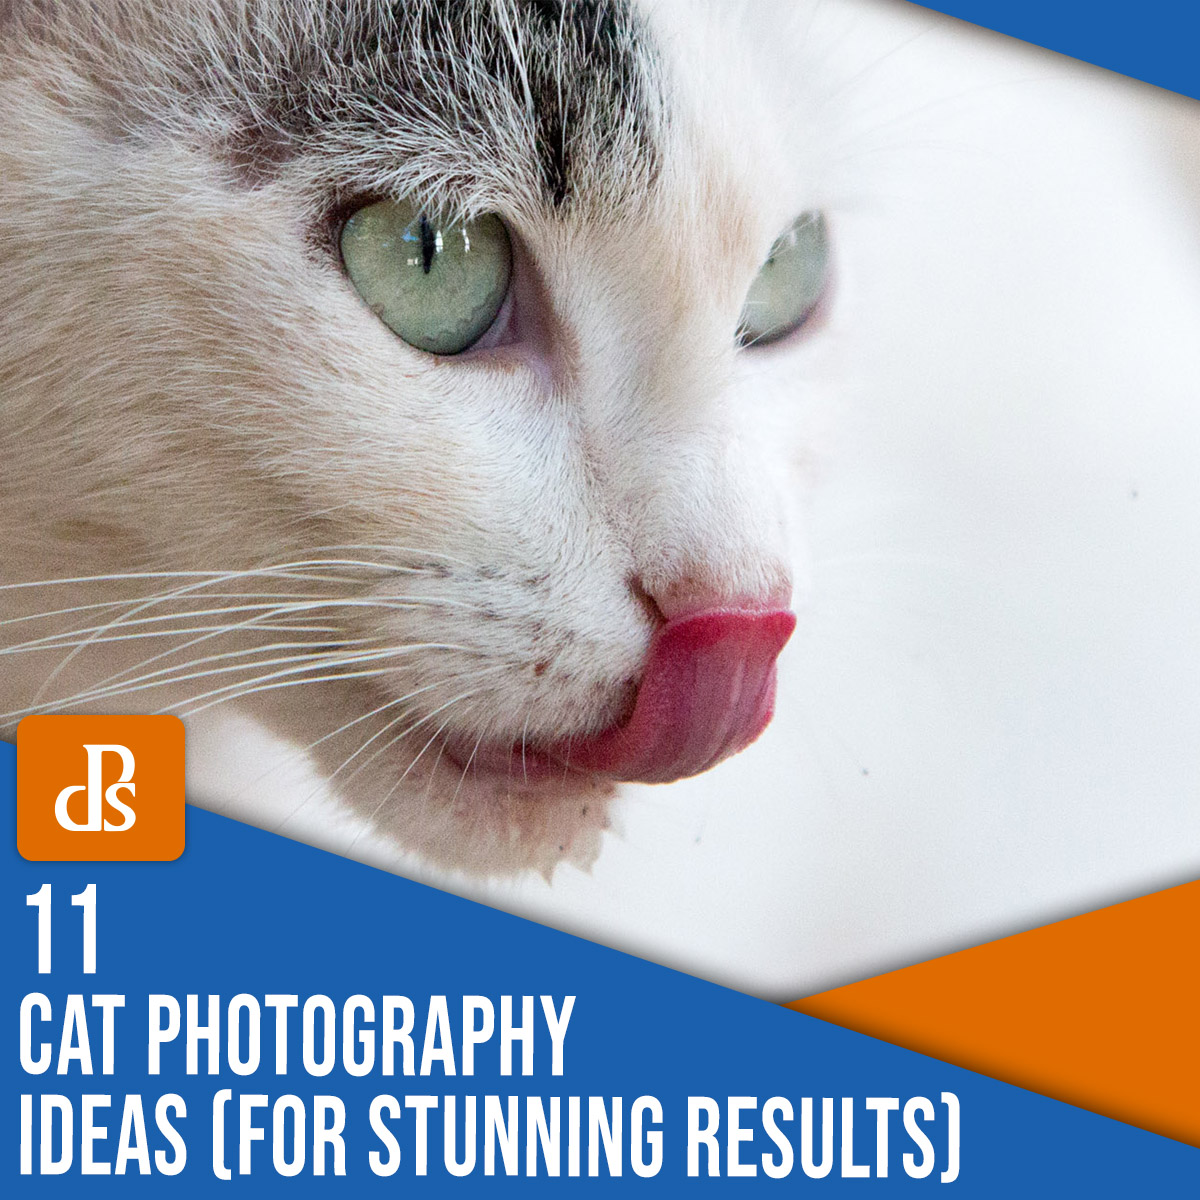 11 cat photography ideas for stunning results